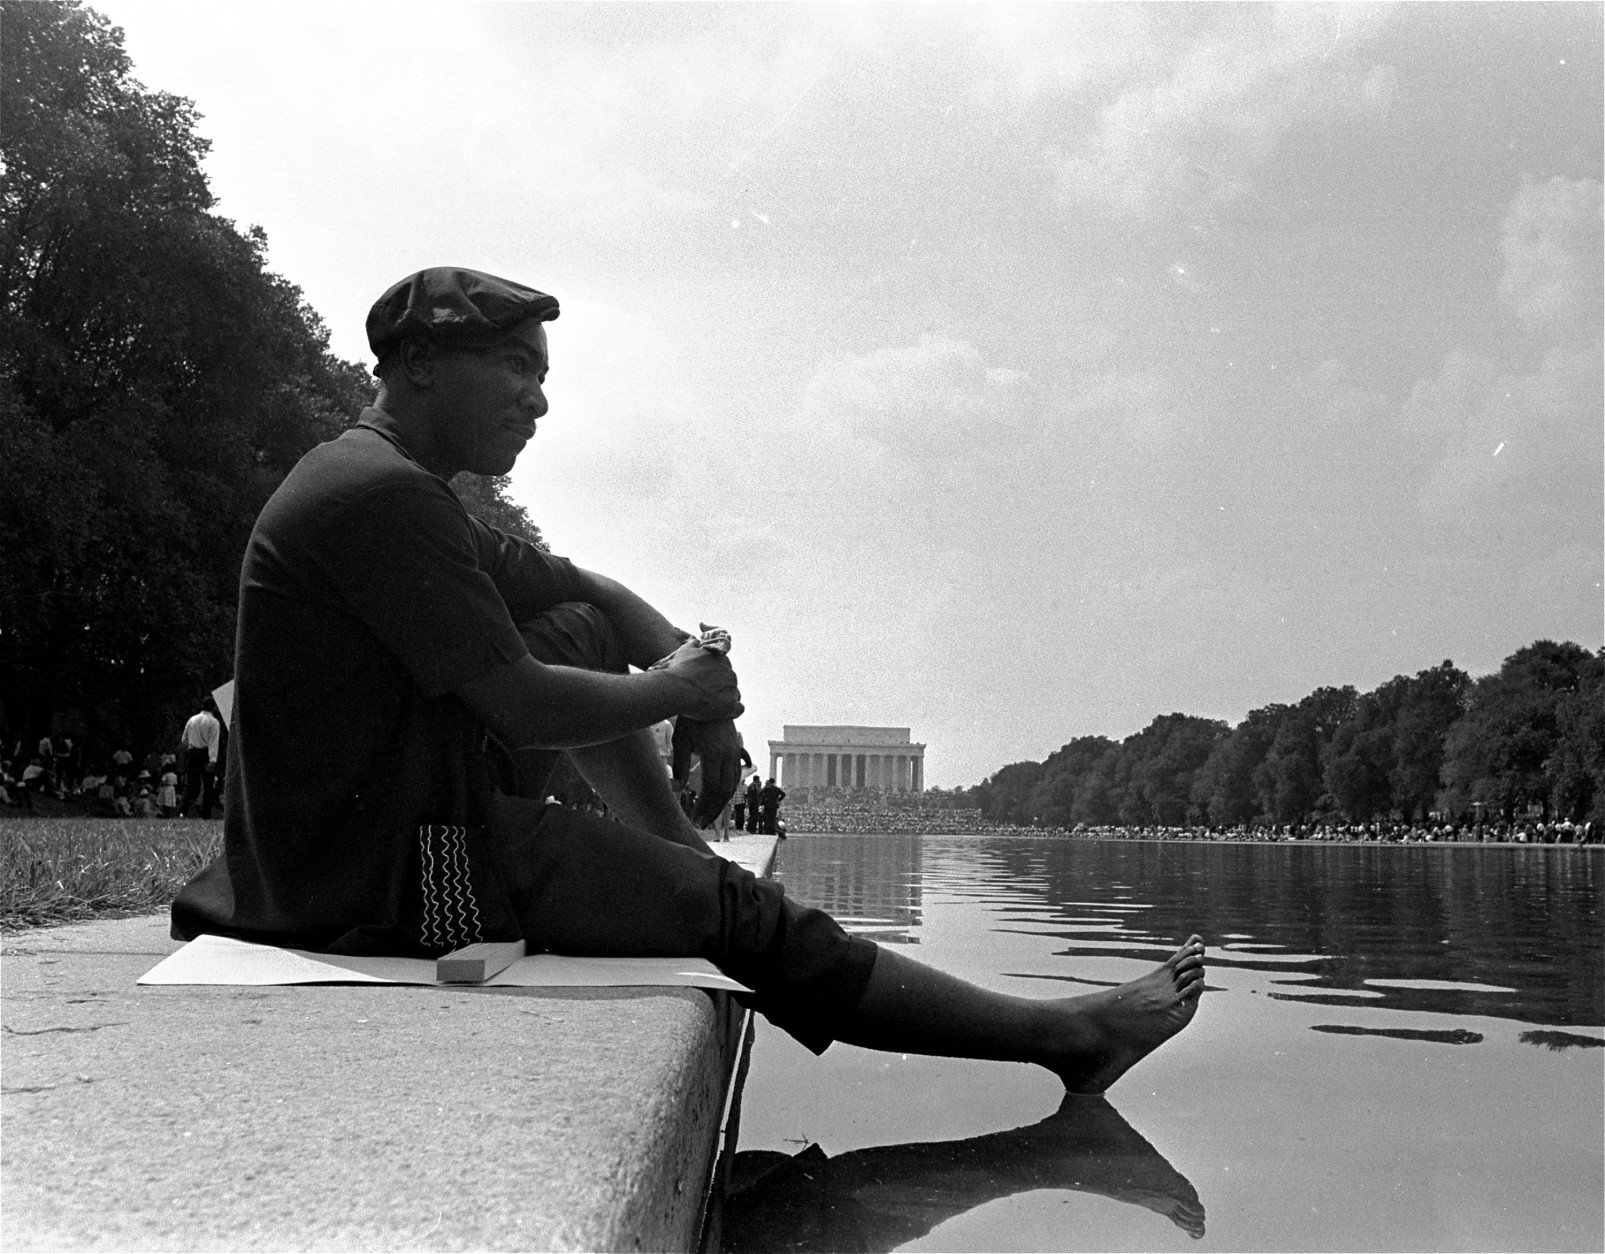 Sitting on his placard with his shoes off, a civil rights marcher cooling off his  bare foot on the  surface of the reflecting pool near the Lincoln memorial following the March on Washington, August 28, 1963.  (AP Photo)